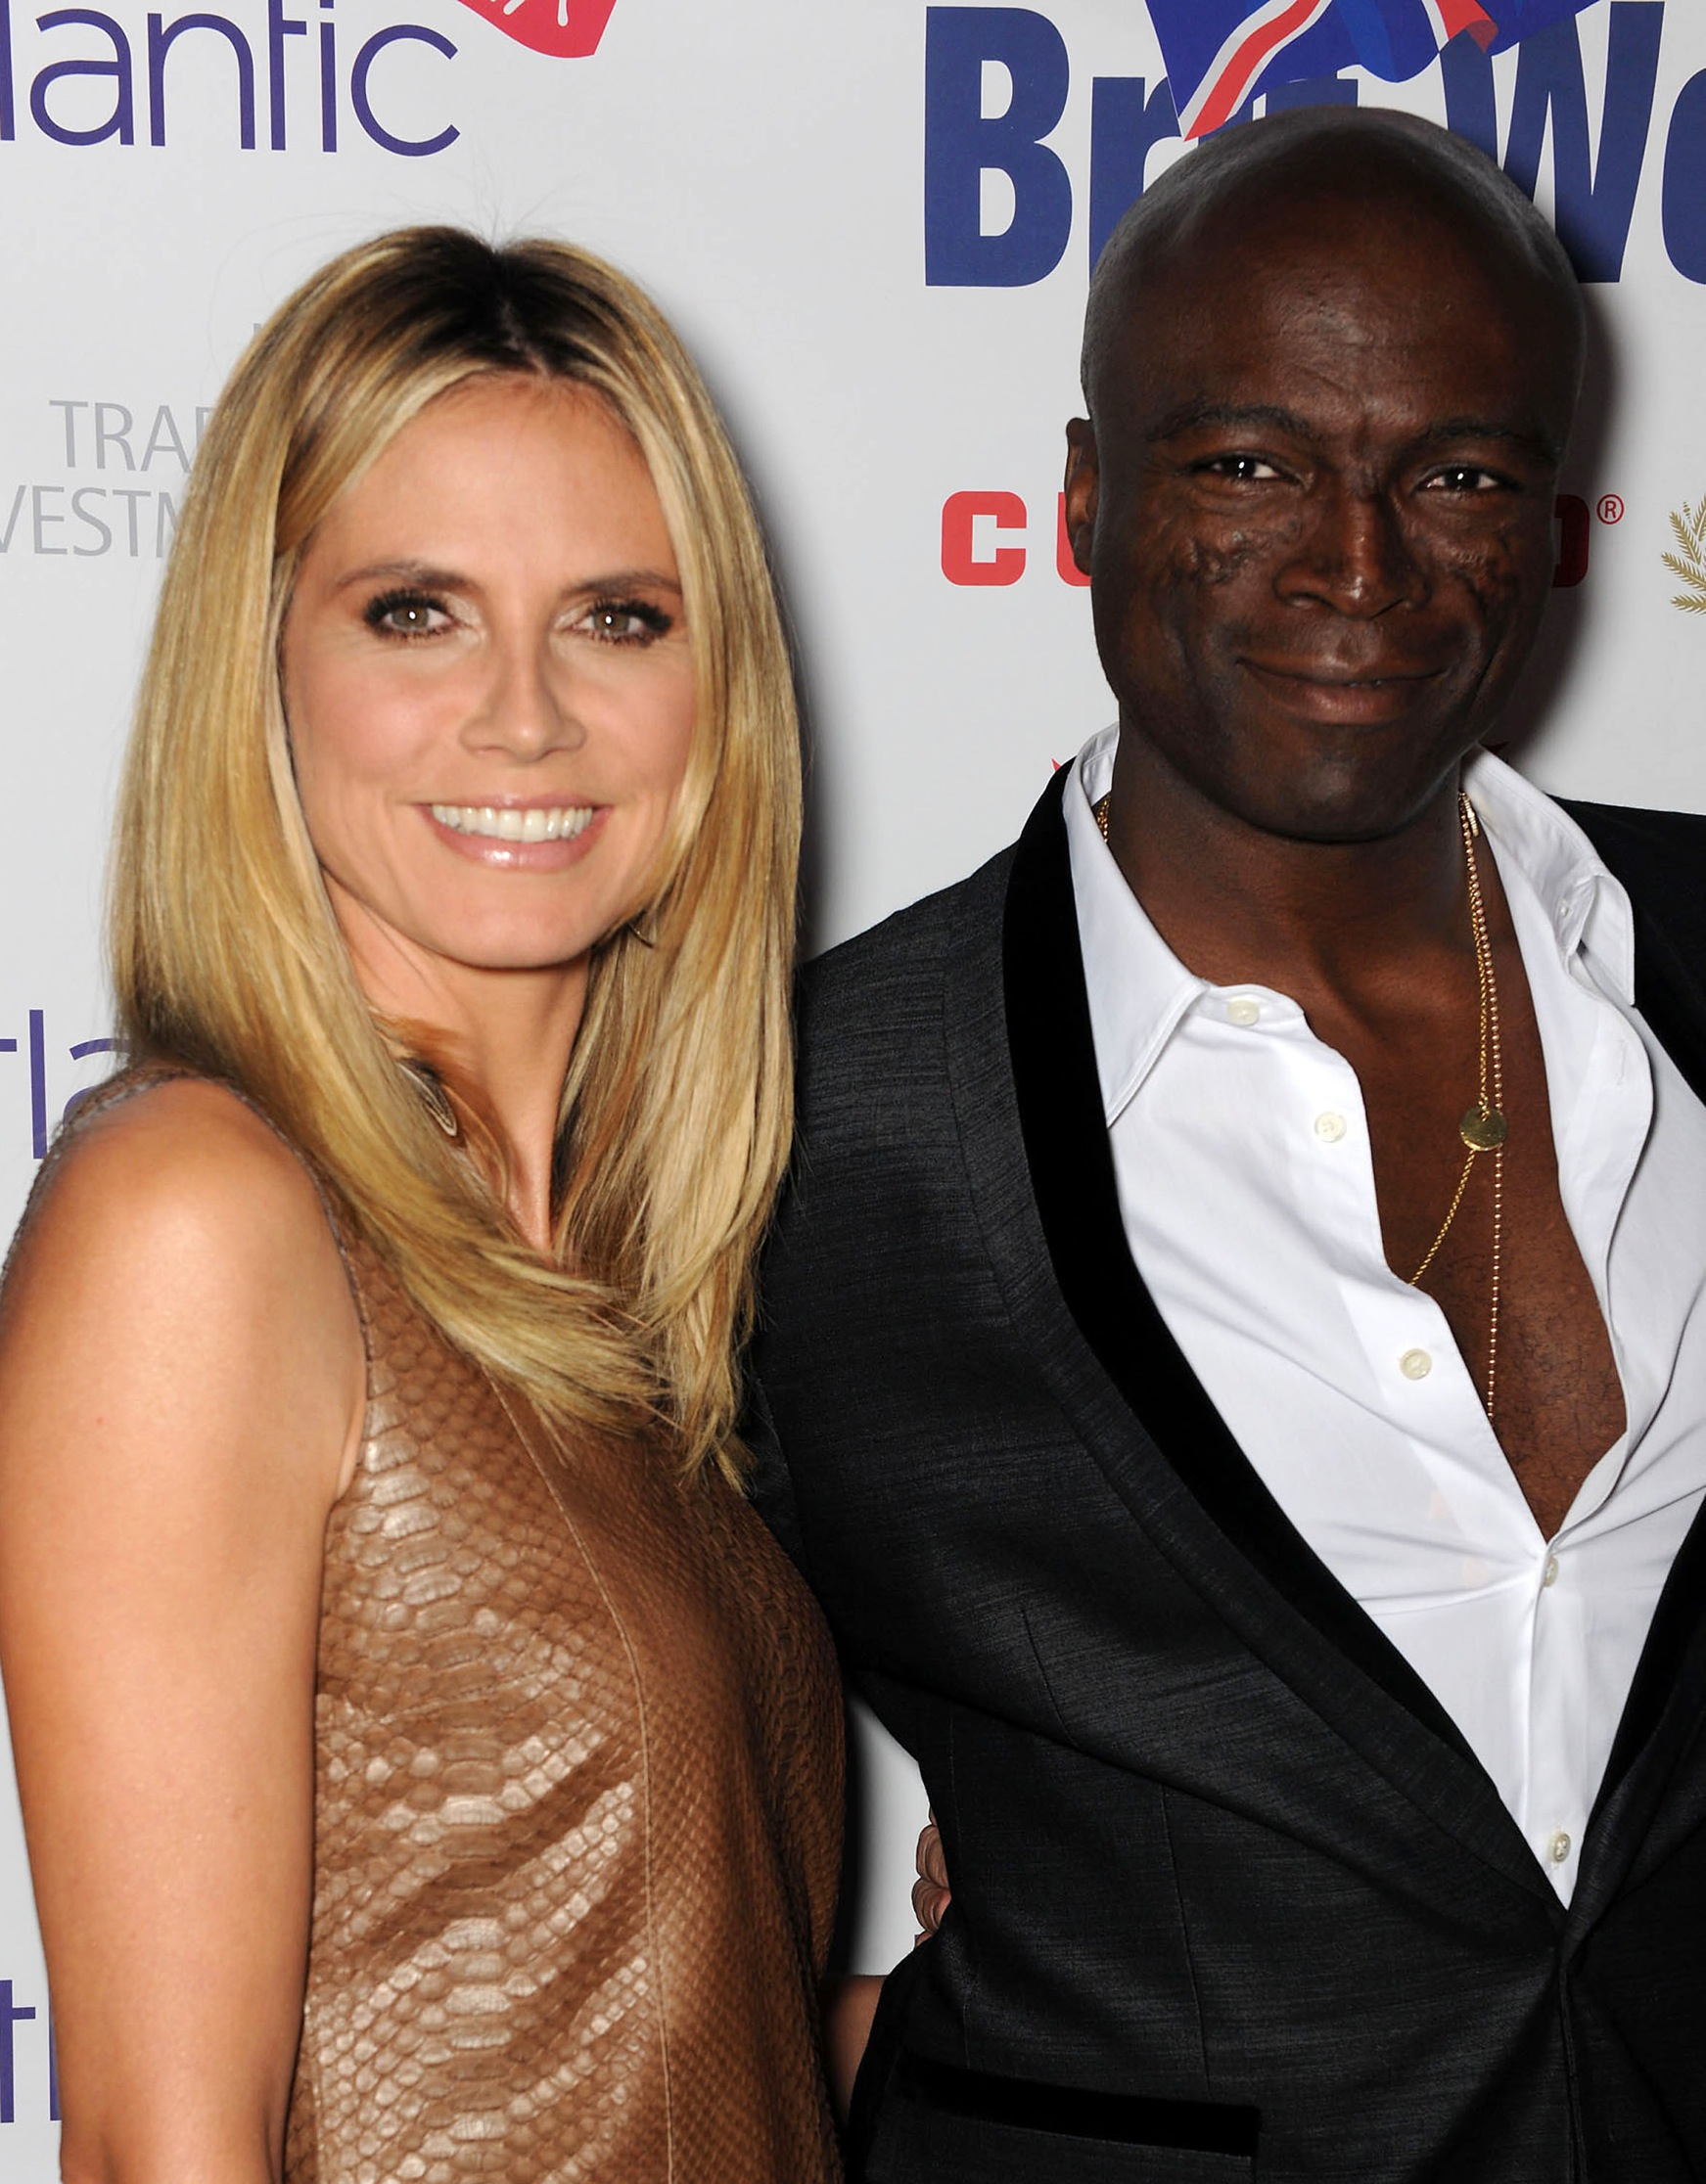 heidi klum and seal photos